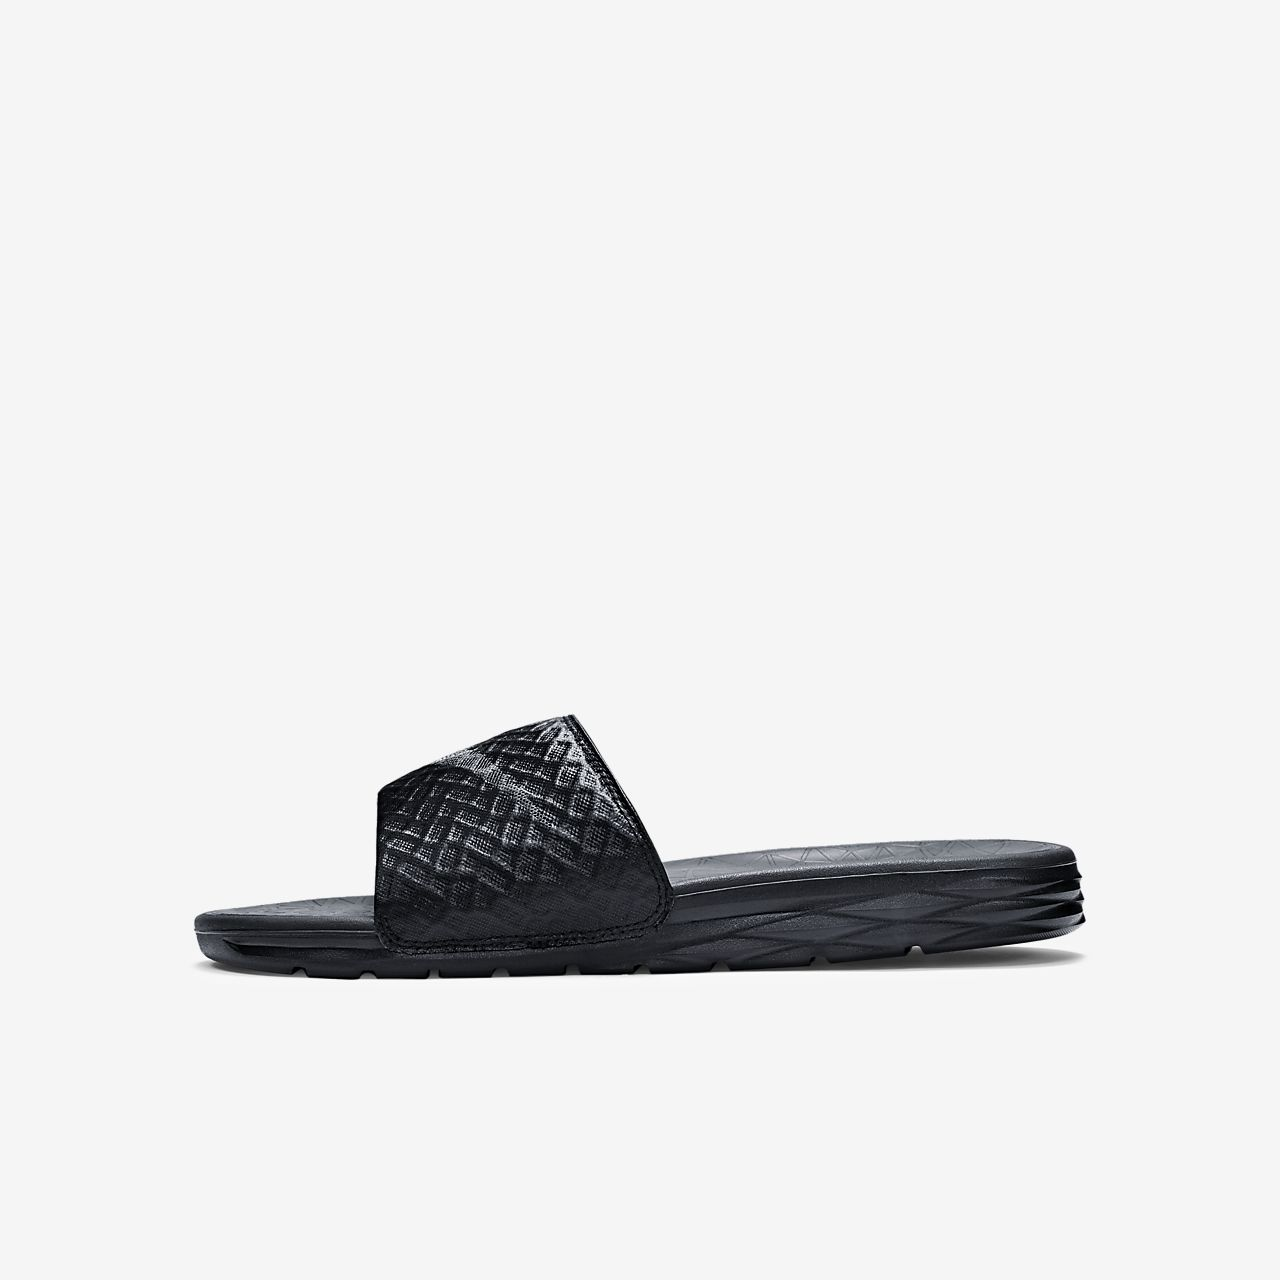 a9766822b23fa9 ... Nike Benassi Solarsoft 2 Men s Slide